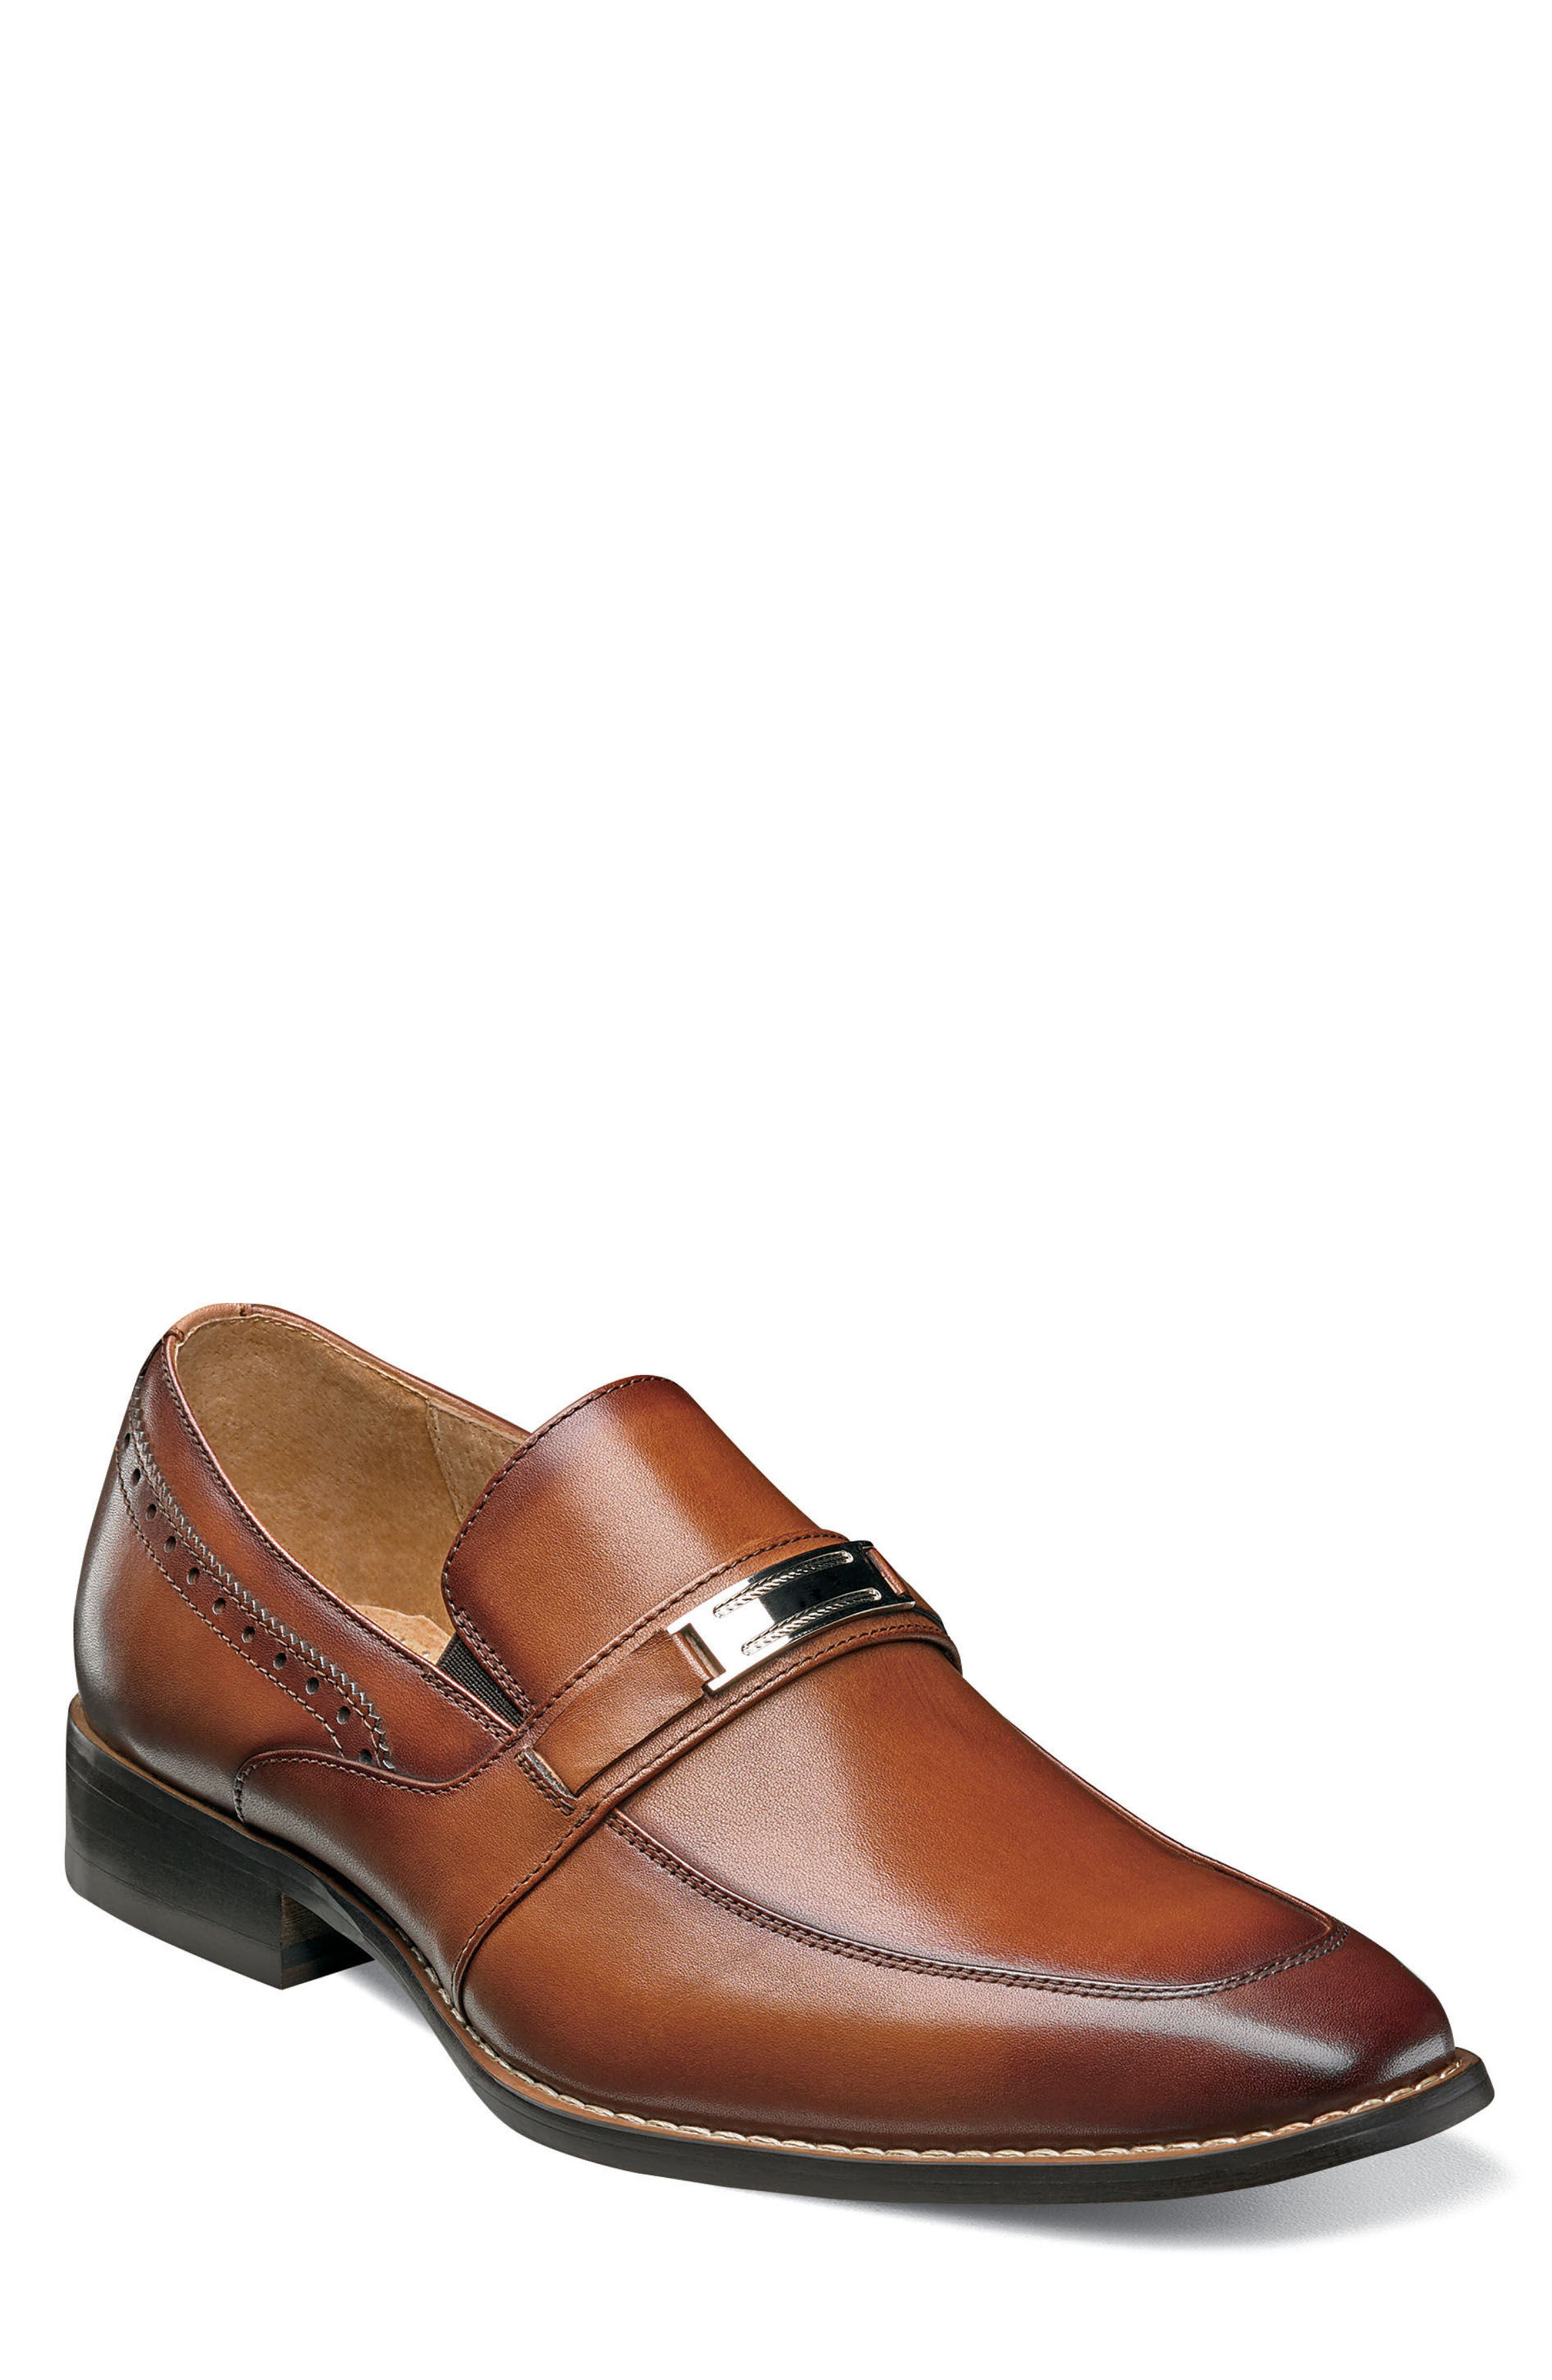 STACY ADAMS,                             Shaw Bit Loafer,                             Main thumbnail 1, color,                             201